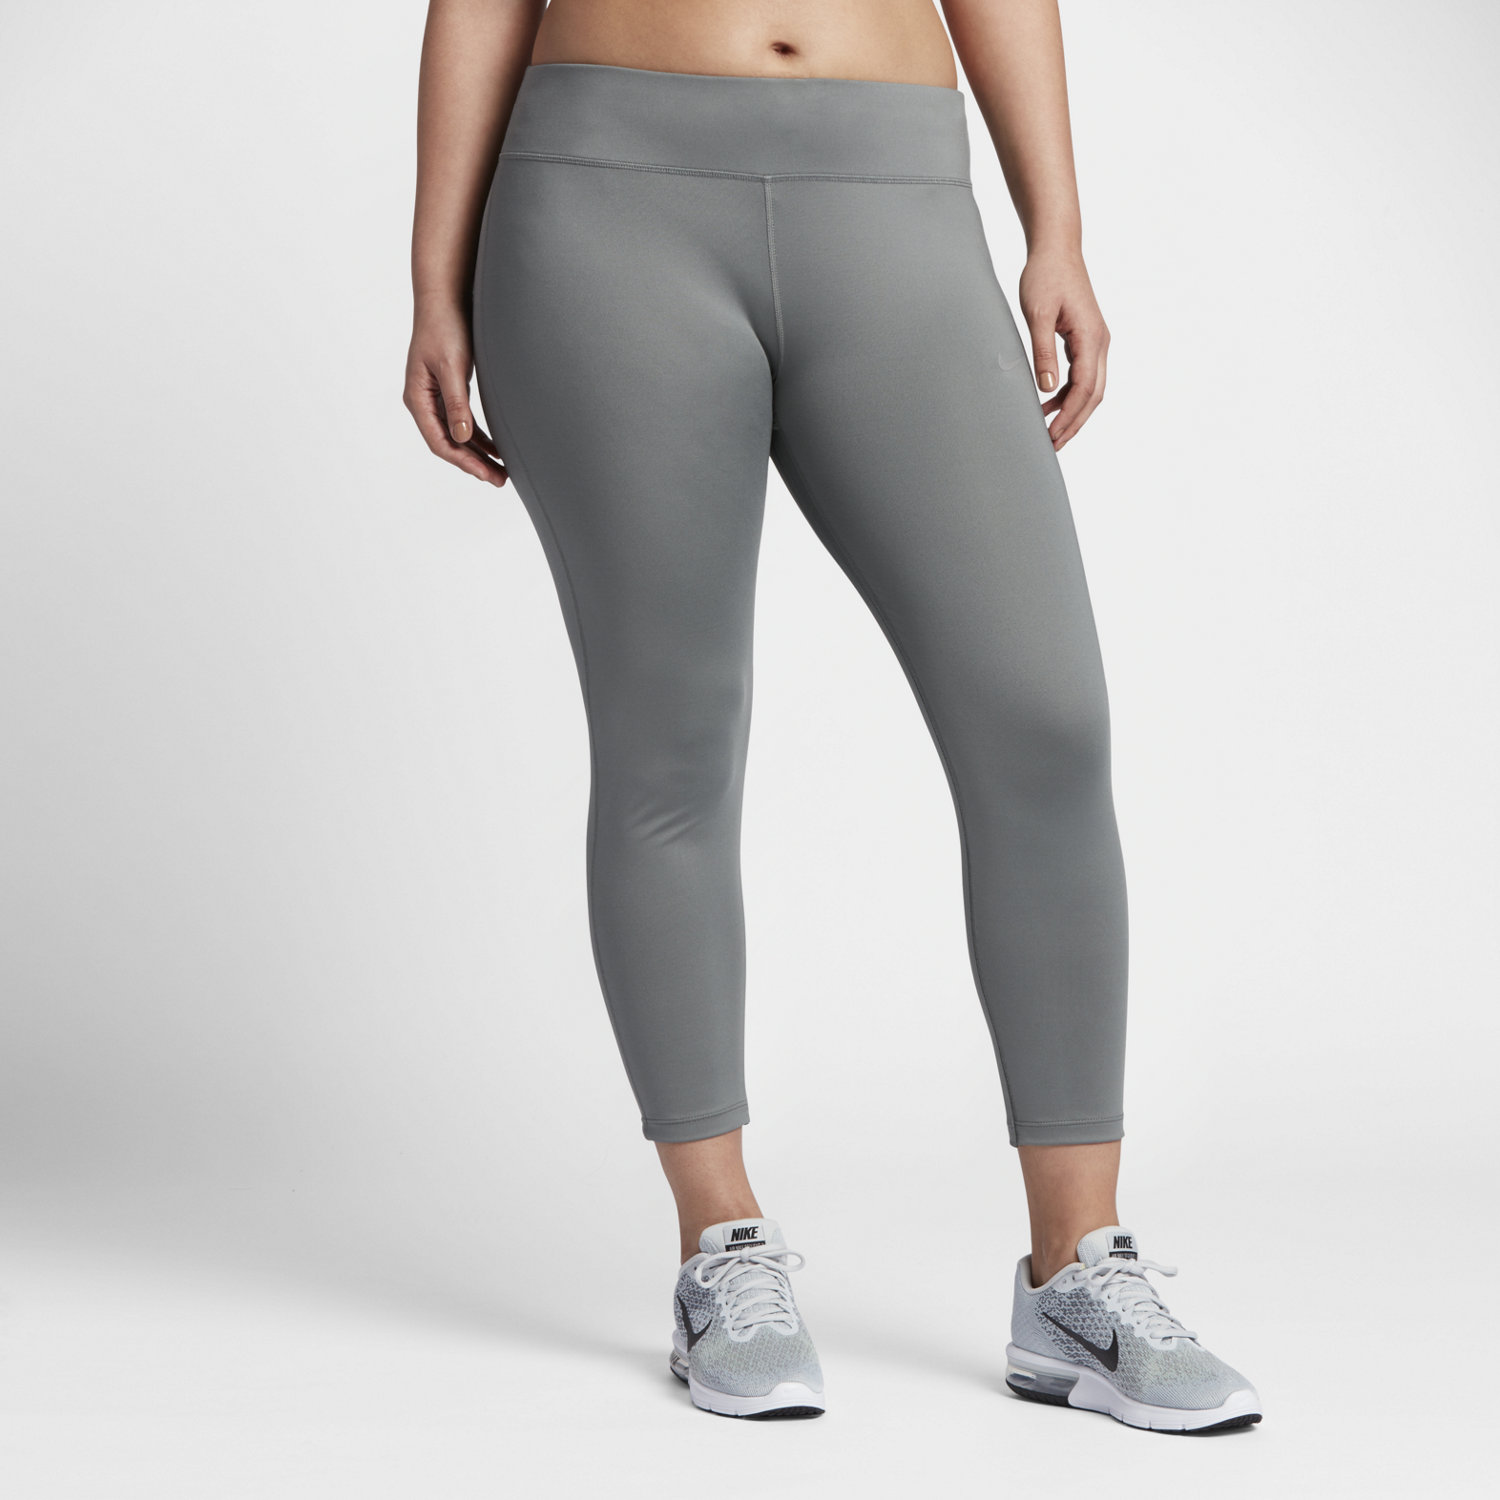 Whether you need compression bike shorts, a basic running tee, workout tanks or bra tops, there is something to be found for everyone in our fabulous selection of plus size run and bike gear. We're dedicated to helping you find your perfect fit, style and size.